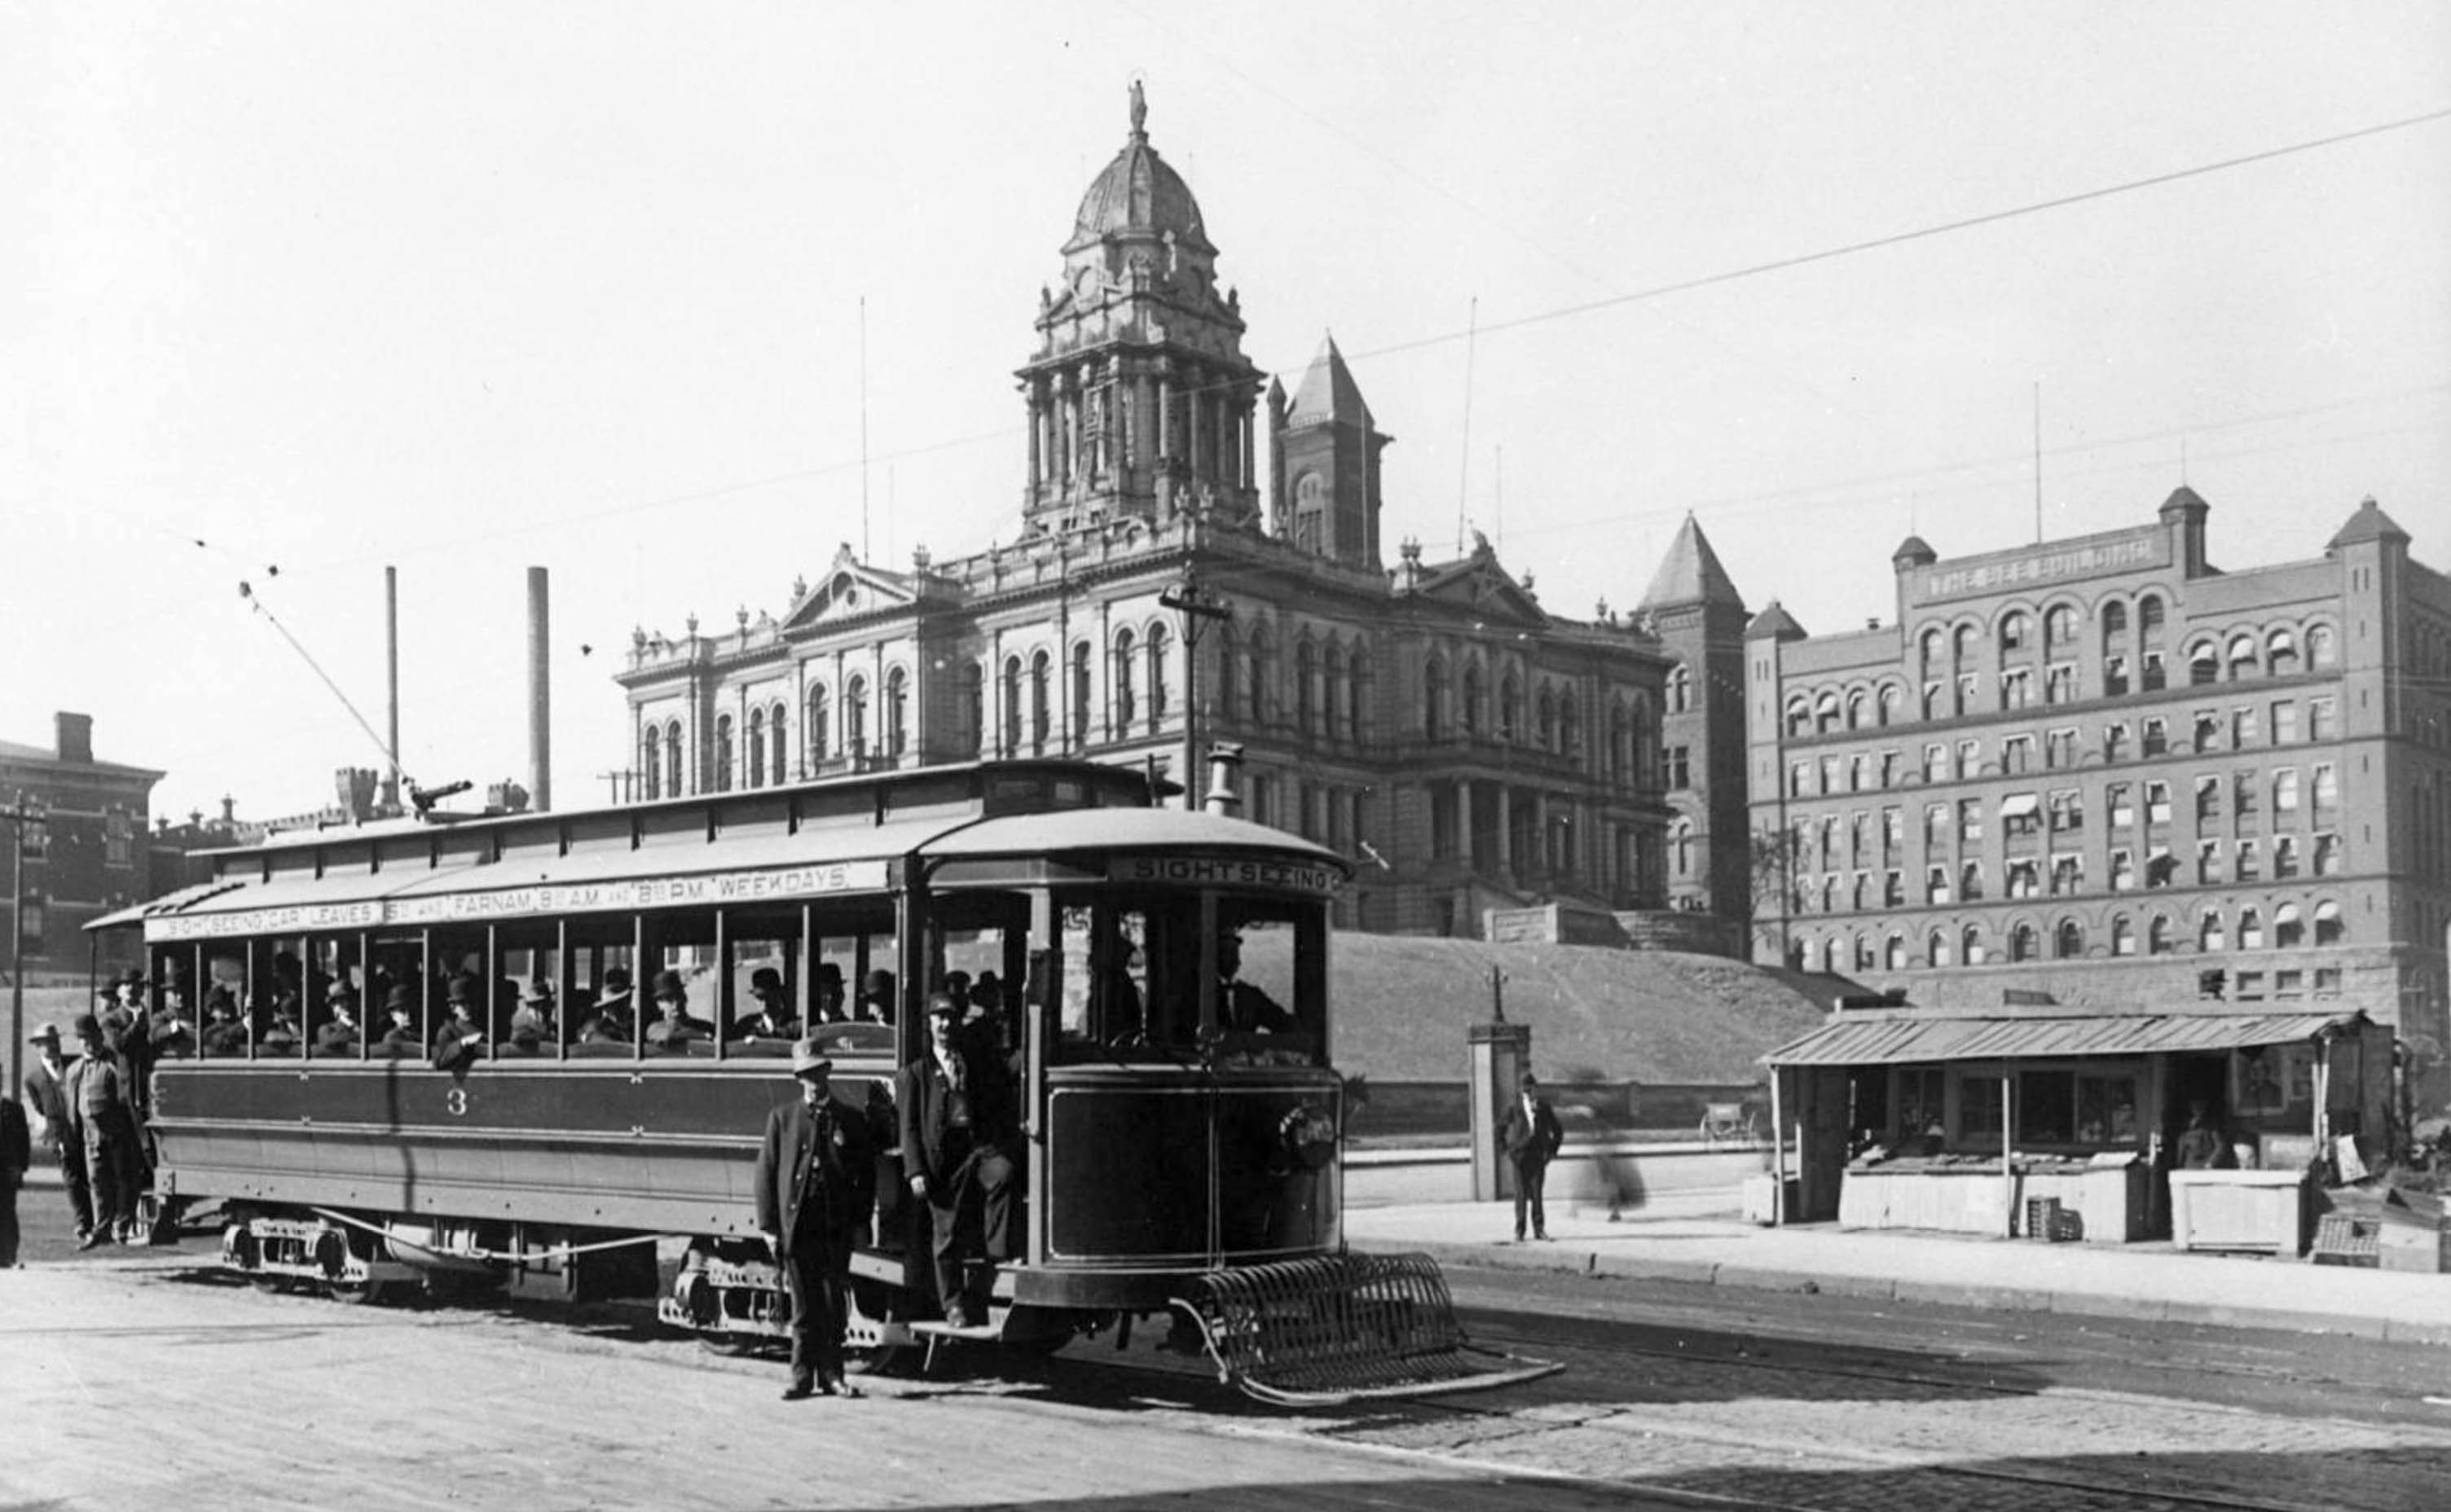 Black and white street-view of a streetcar in the foreground, overflowing with people posing for the photo. Center-background is the Douglas County Courthouse.